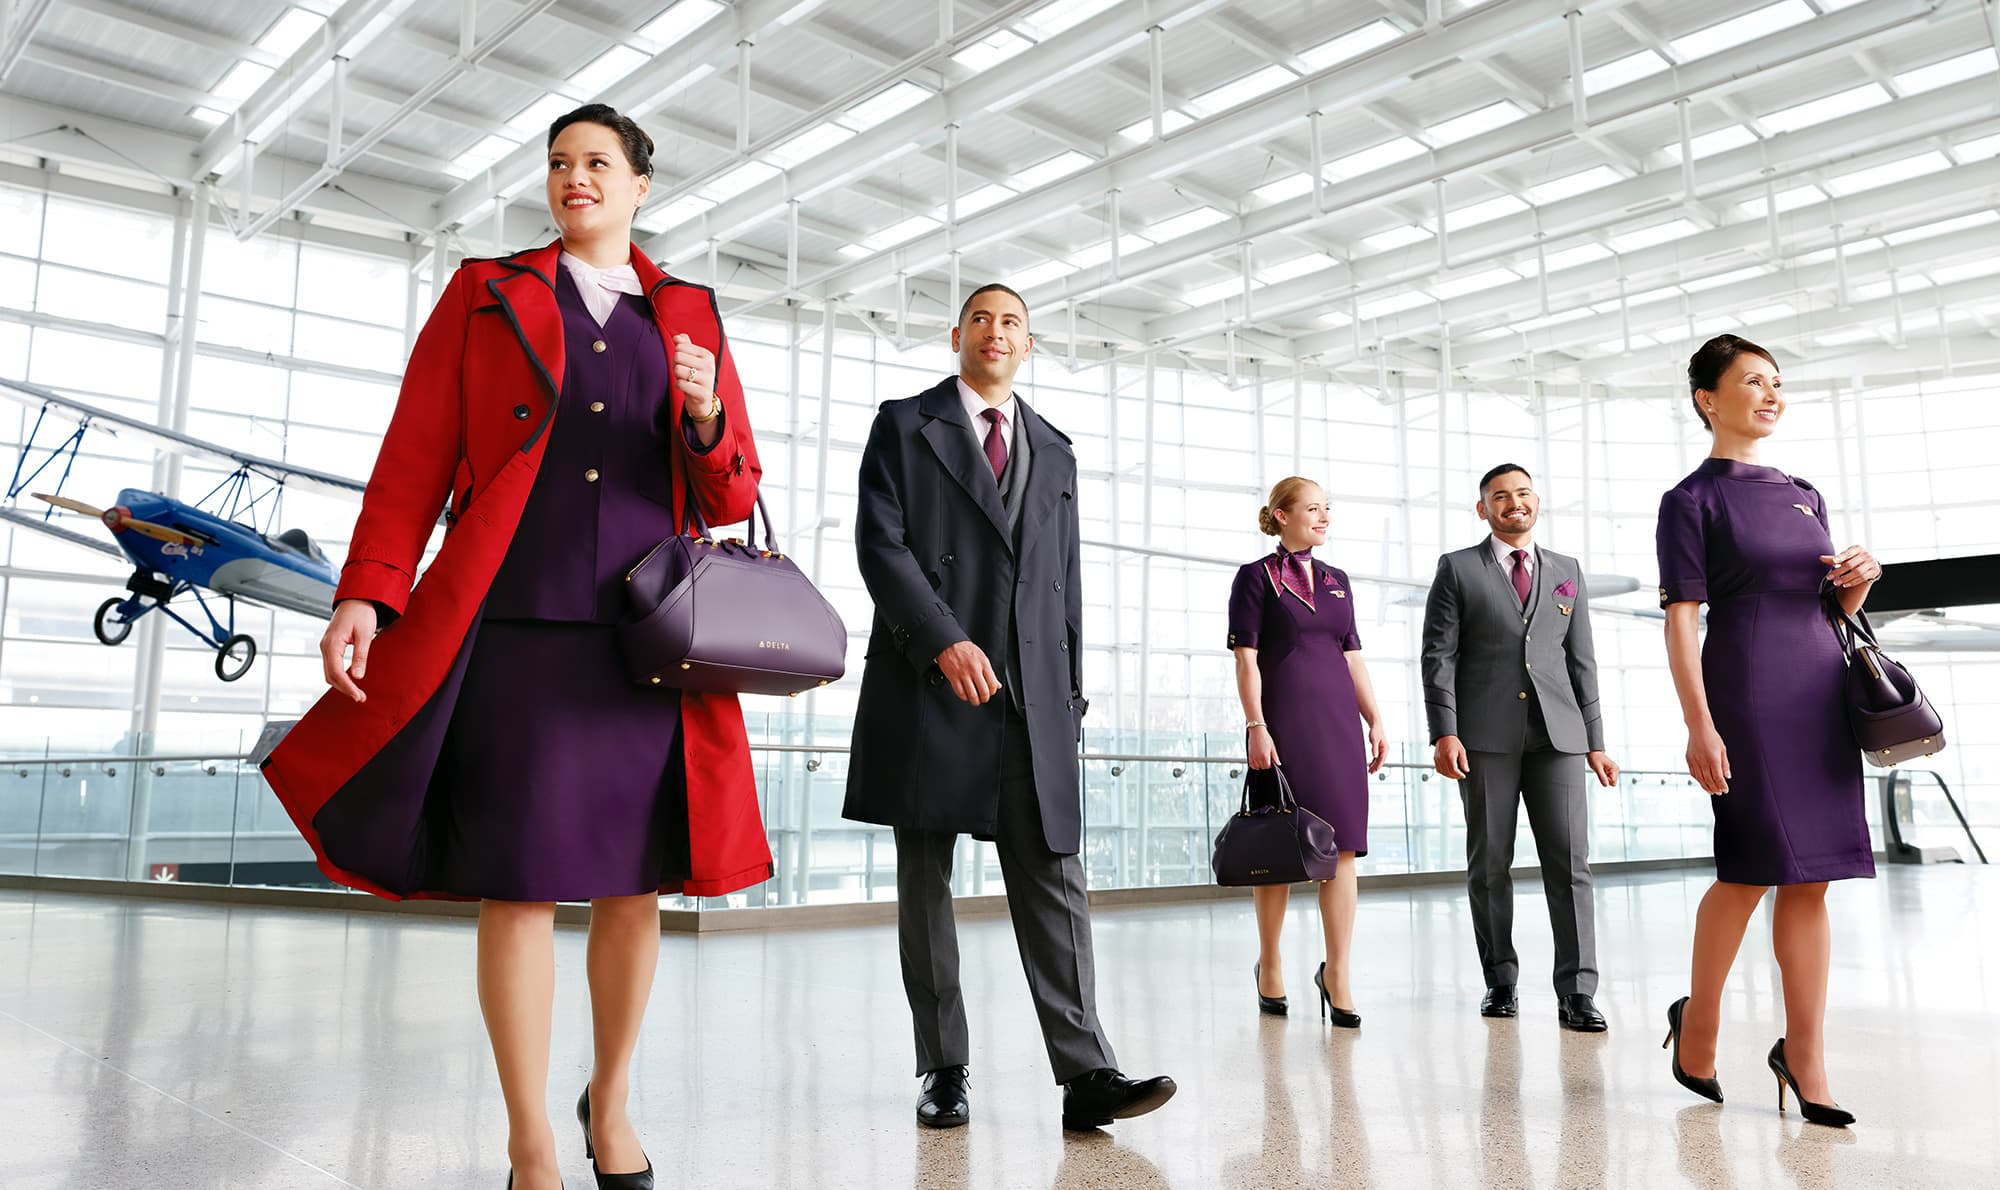 Deltas new uniforms are giving some flight attendants rashes recommend